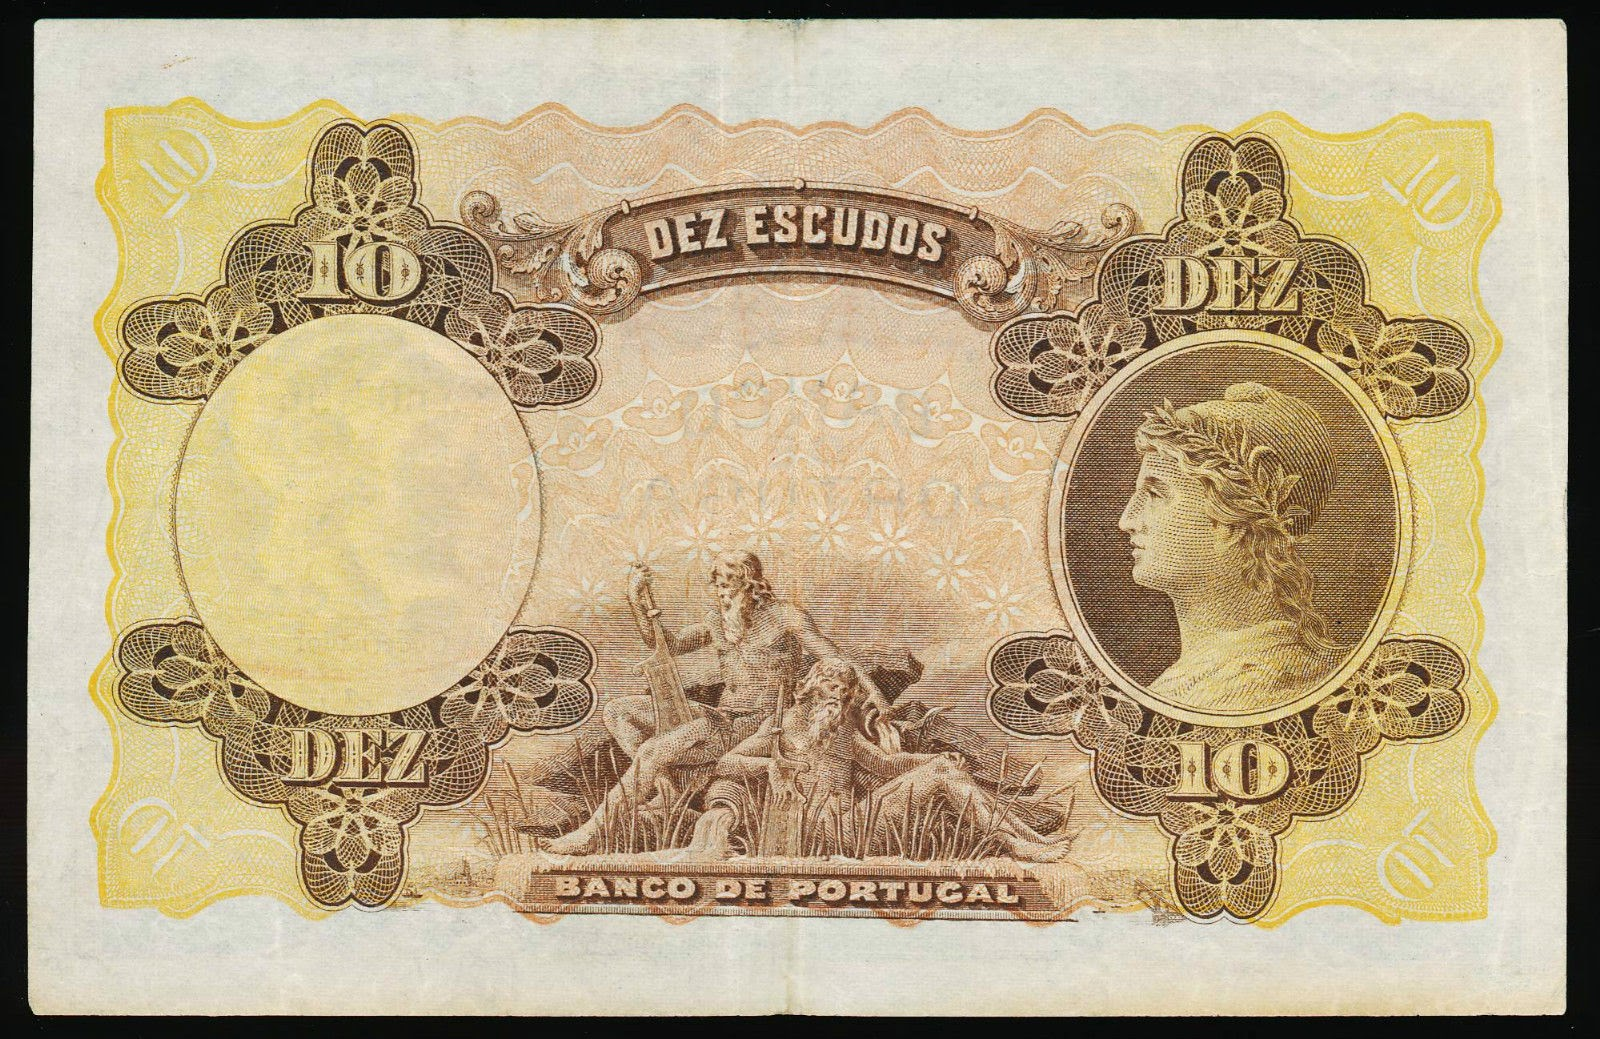 Portugal 10 Portuguese Escudos note of 1920